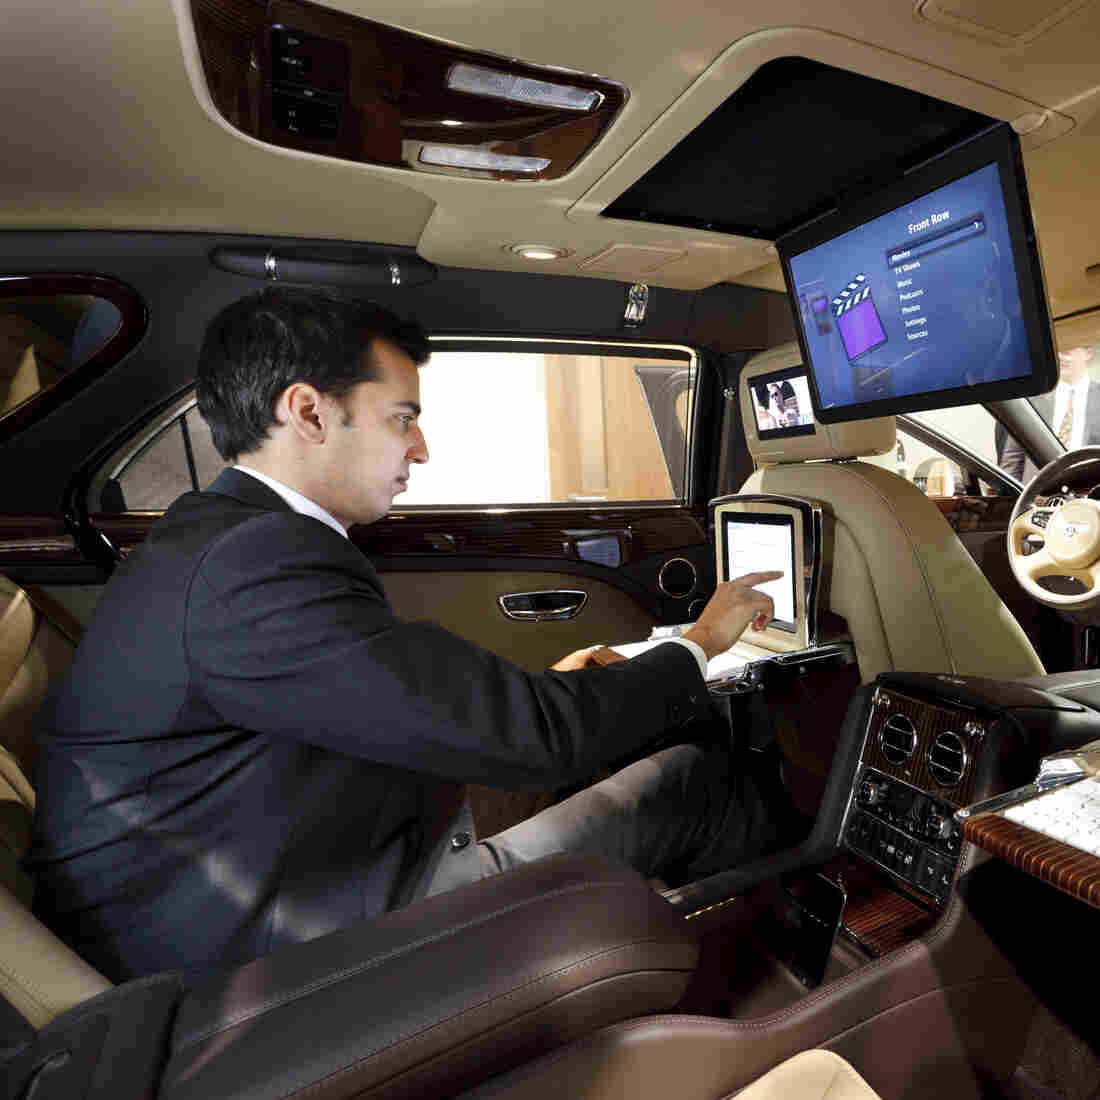 The Next Workplace? Behind The Wheel